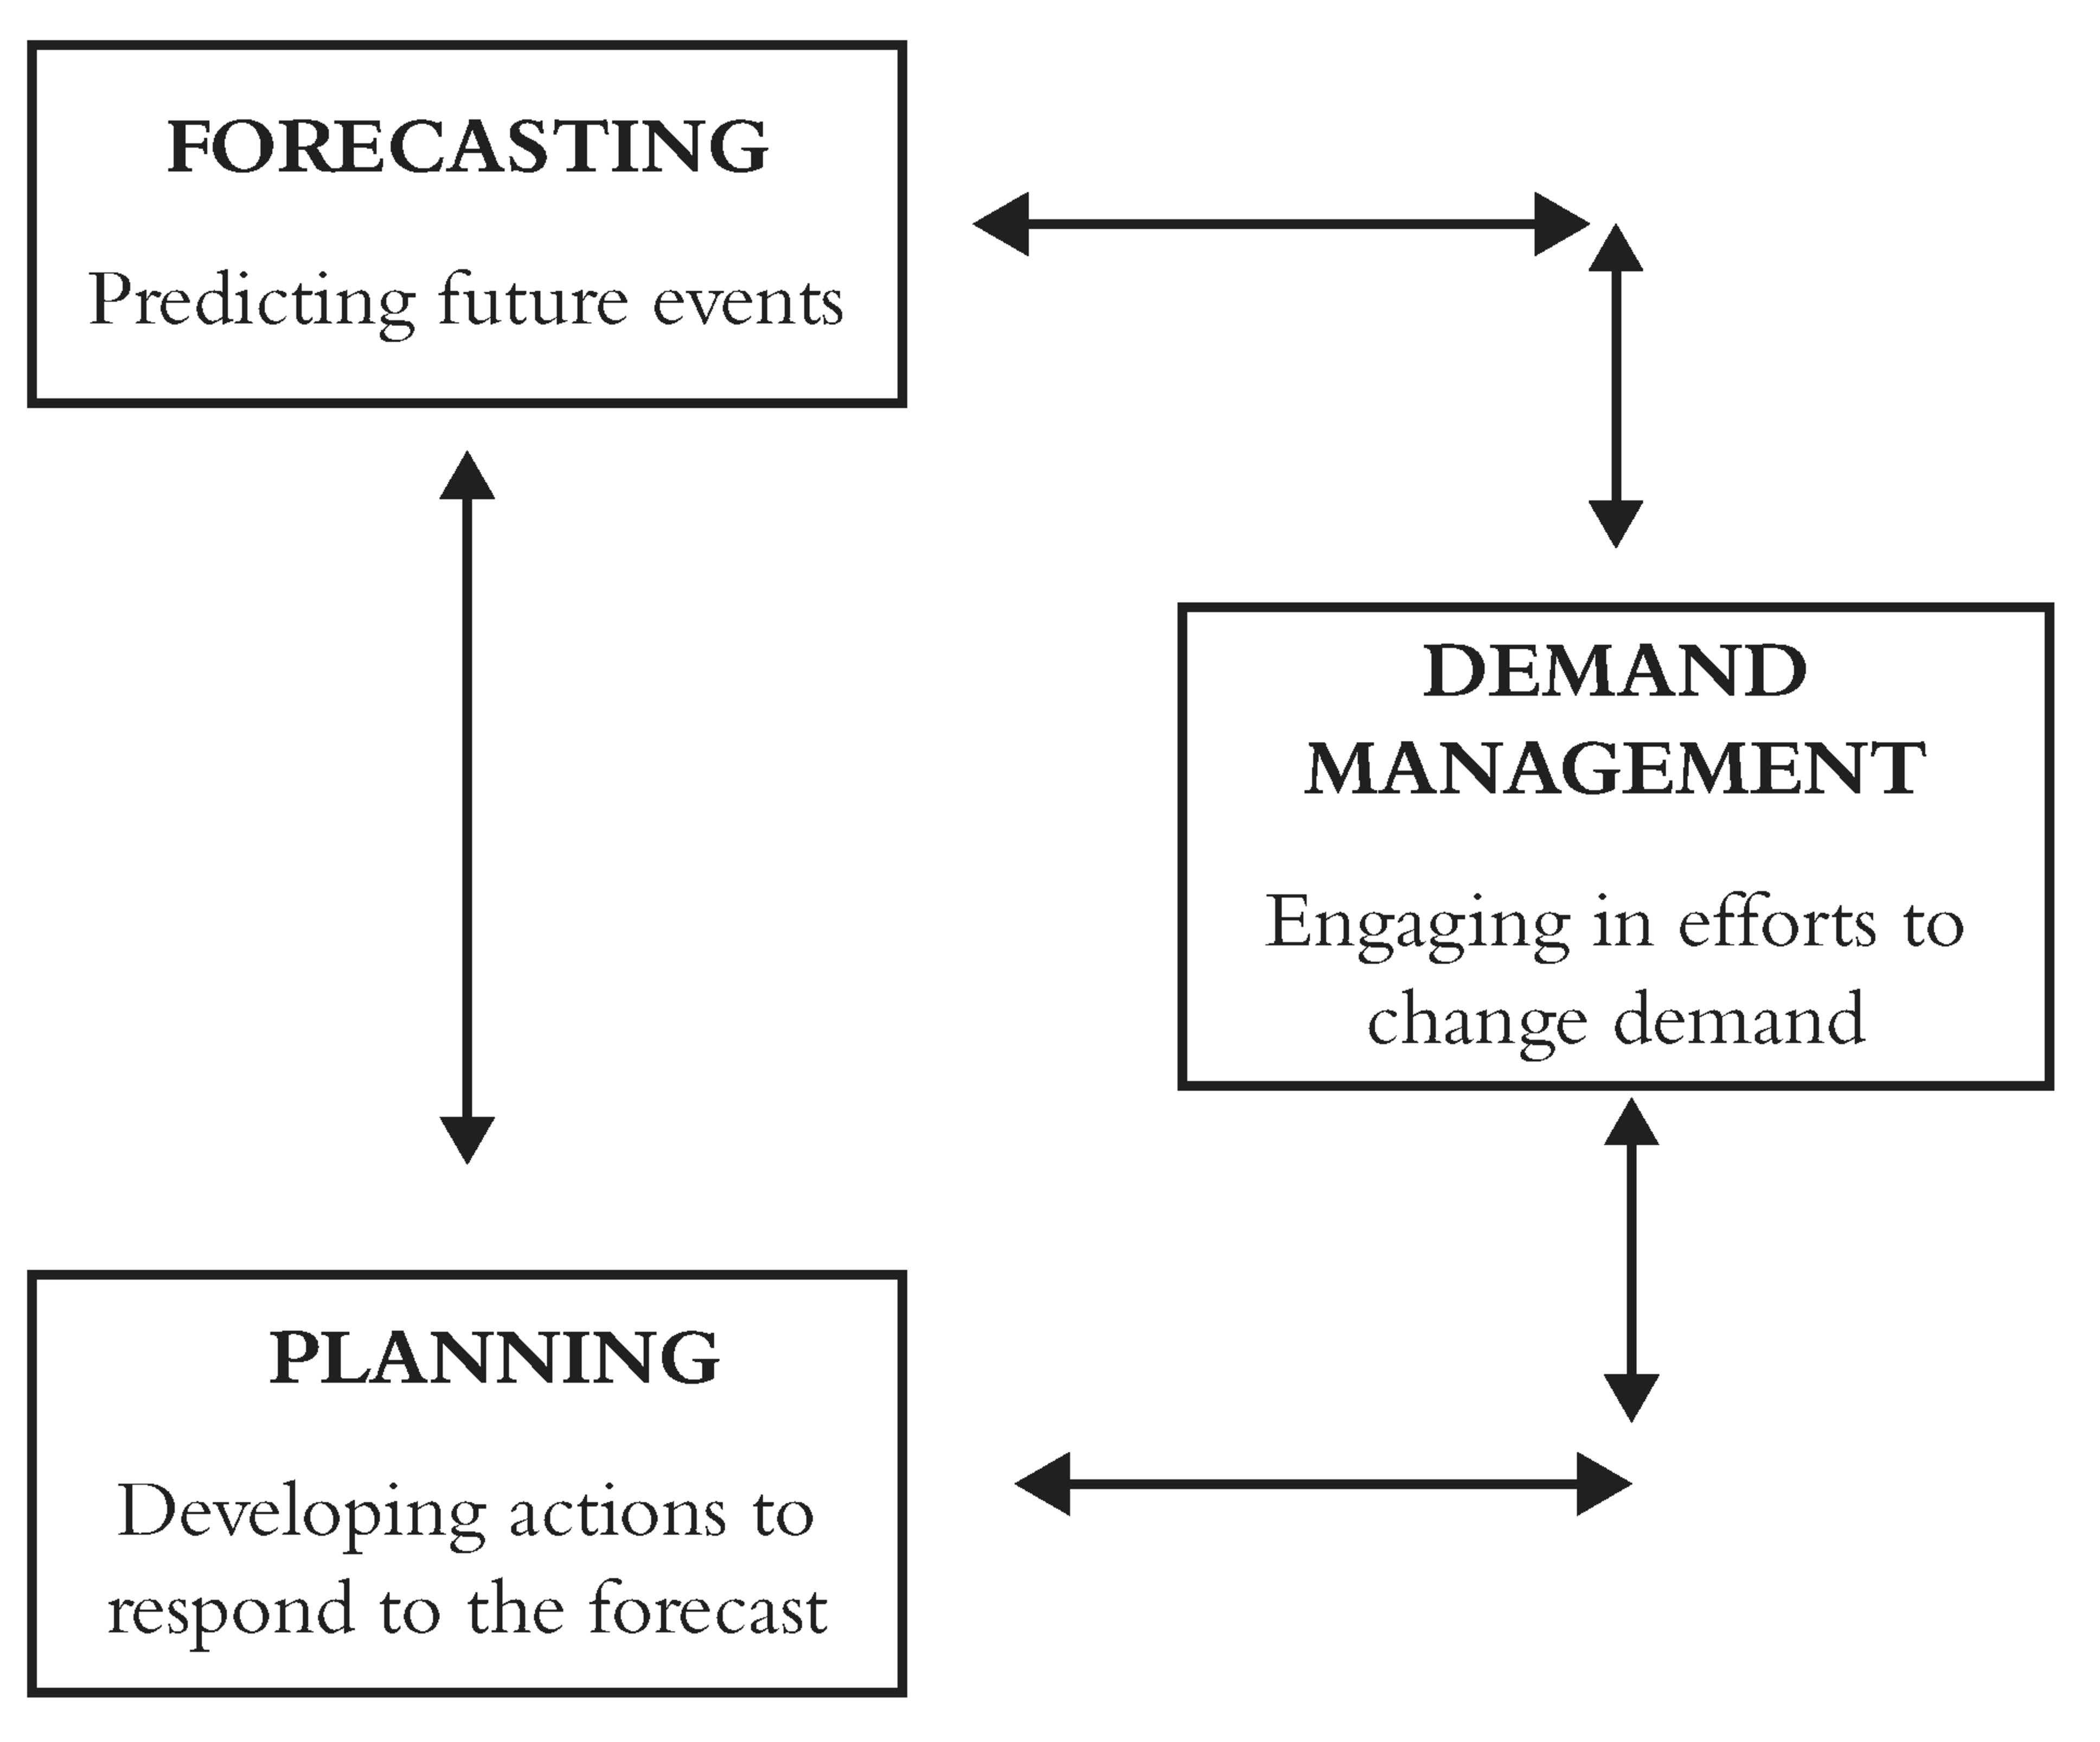 Routledge handbooks online the iterative cycle of forecasting planning and demand management fandeluxe Choice Image